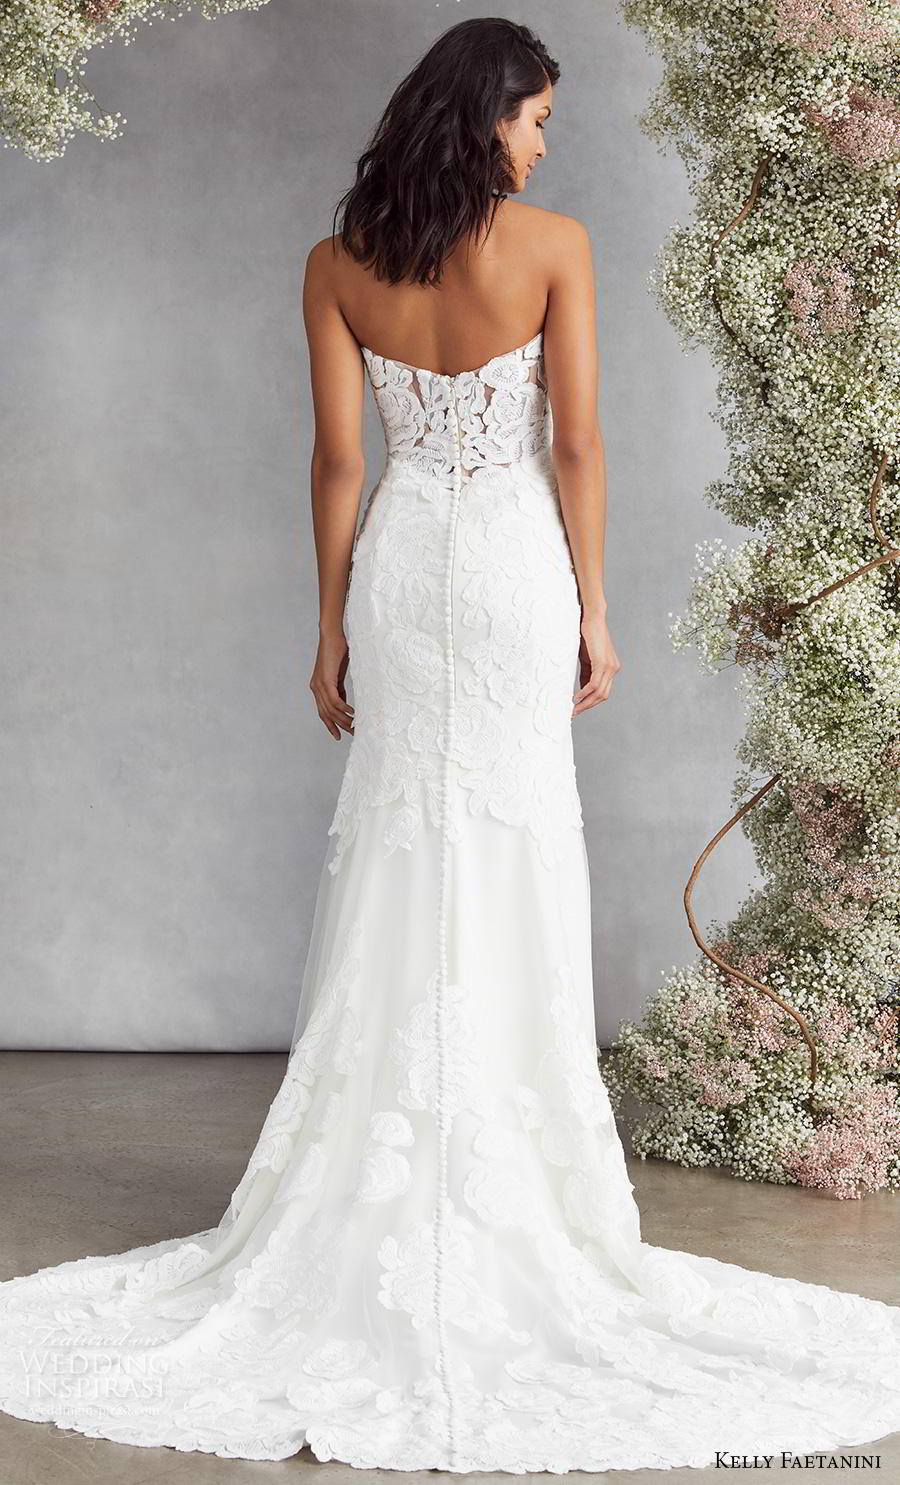 kelly faetanini fall 2020 bridal strapless deep plunging sweetheart neckline full embellishment romantic fit and flare wedding dress mid back medium train (14) bv